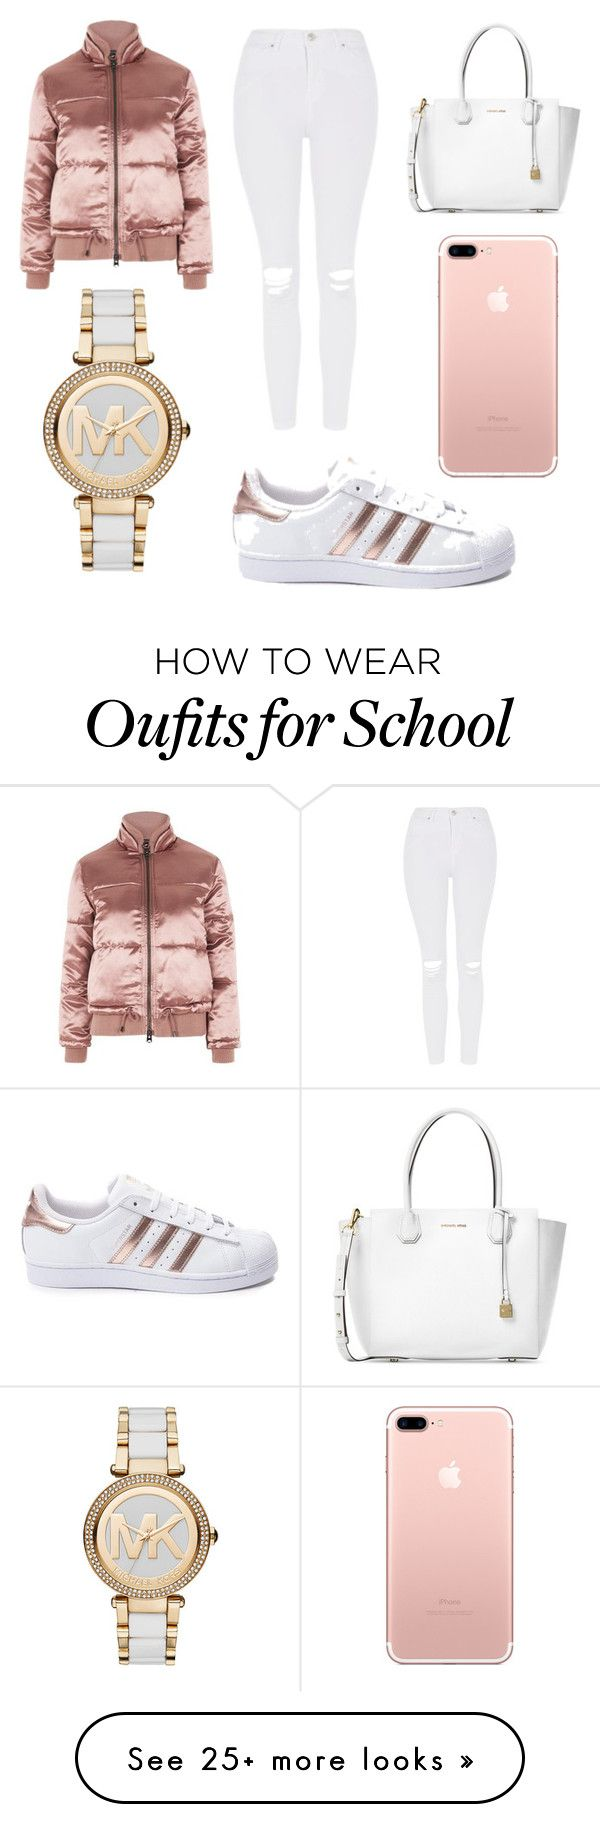 """school outfit "" by ashlehhfhbffg on Polyvore featuring Michael Kors, Topshop and adidas"